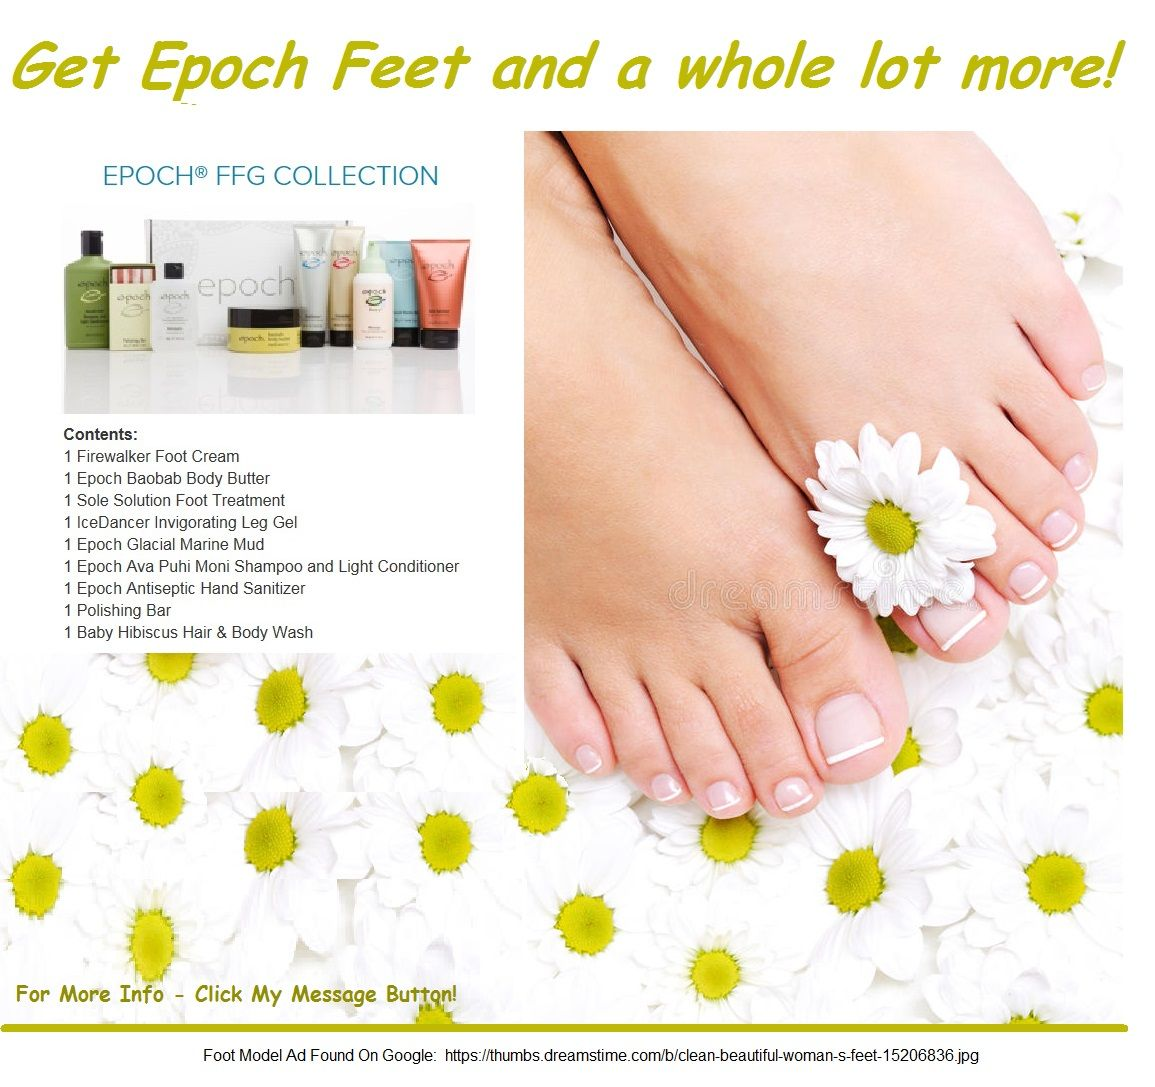 Epoch Ffg Collection Feet Treatment Foot Cream Glacial Marine Mud